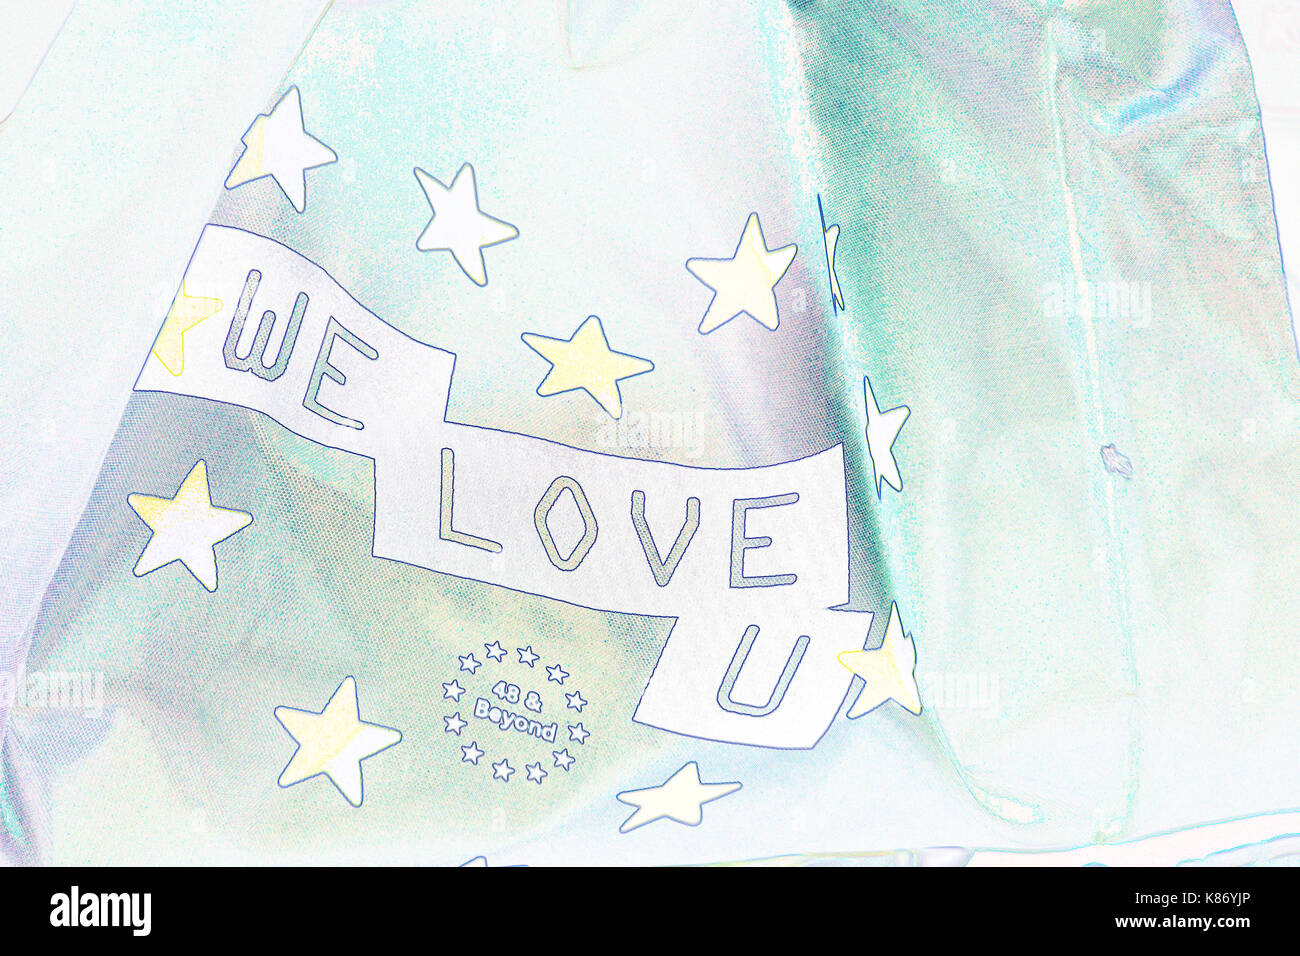 We Love U flag 48 & Beyond at Stop Brexit Demonstration at Bournemouth, Dorset in September - outline Stock Photo